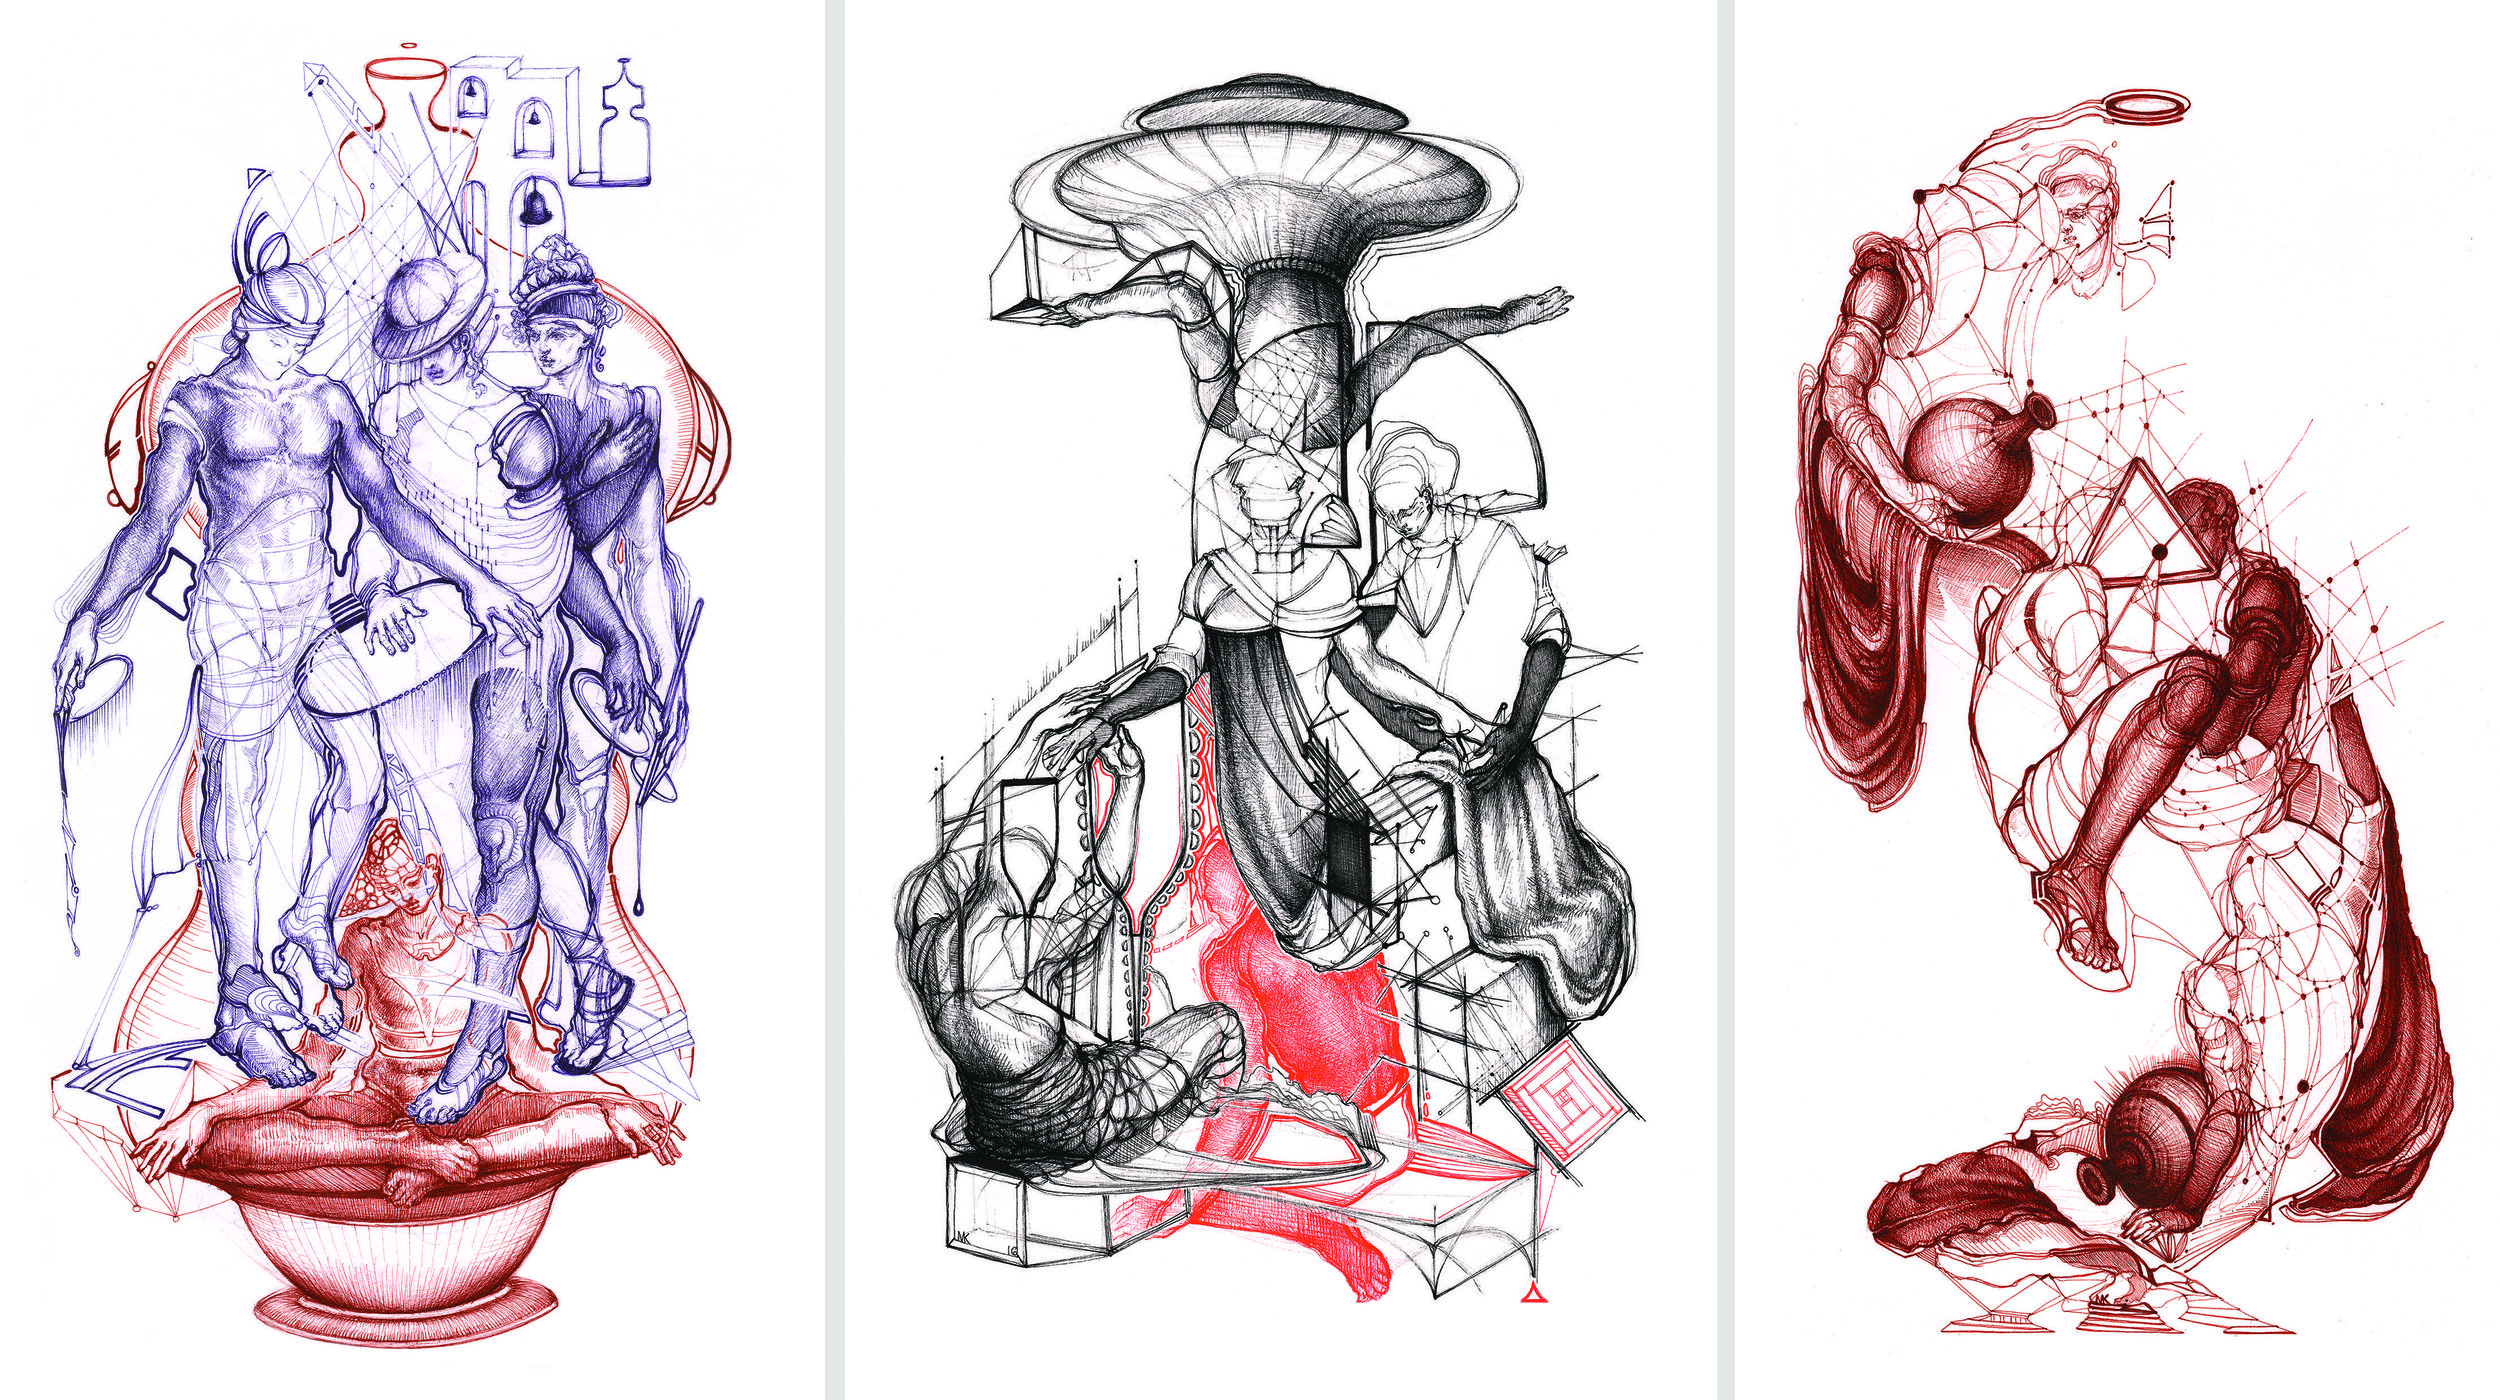 CLICK IMAGE TO SEE THE 'CODEX' SERIES